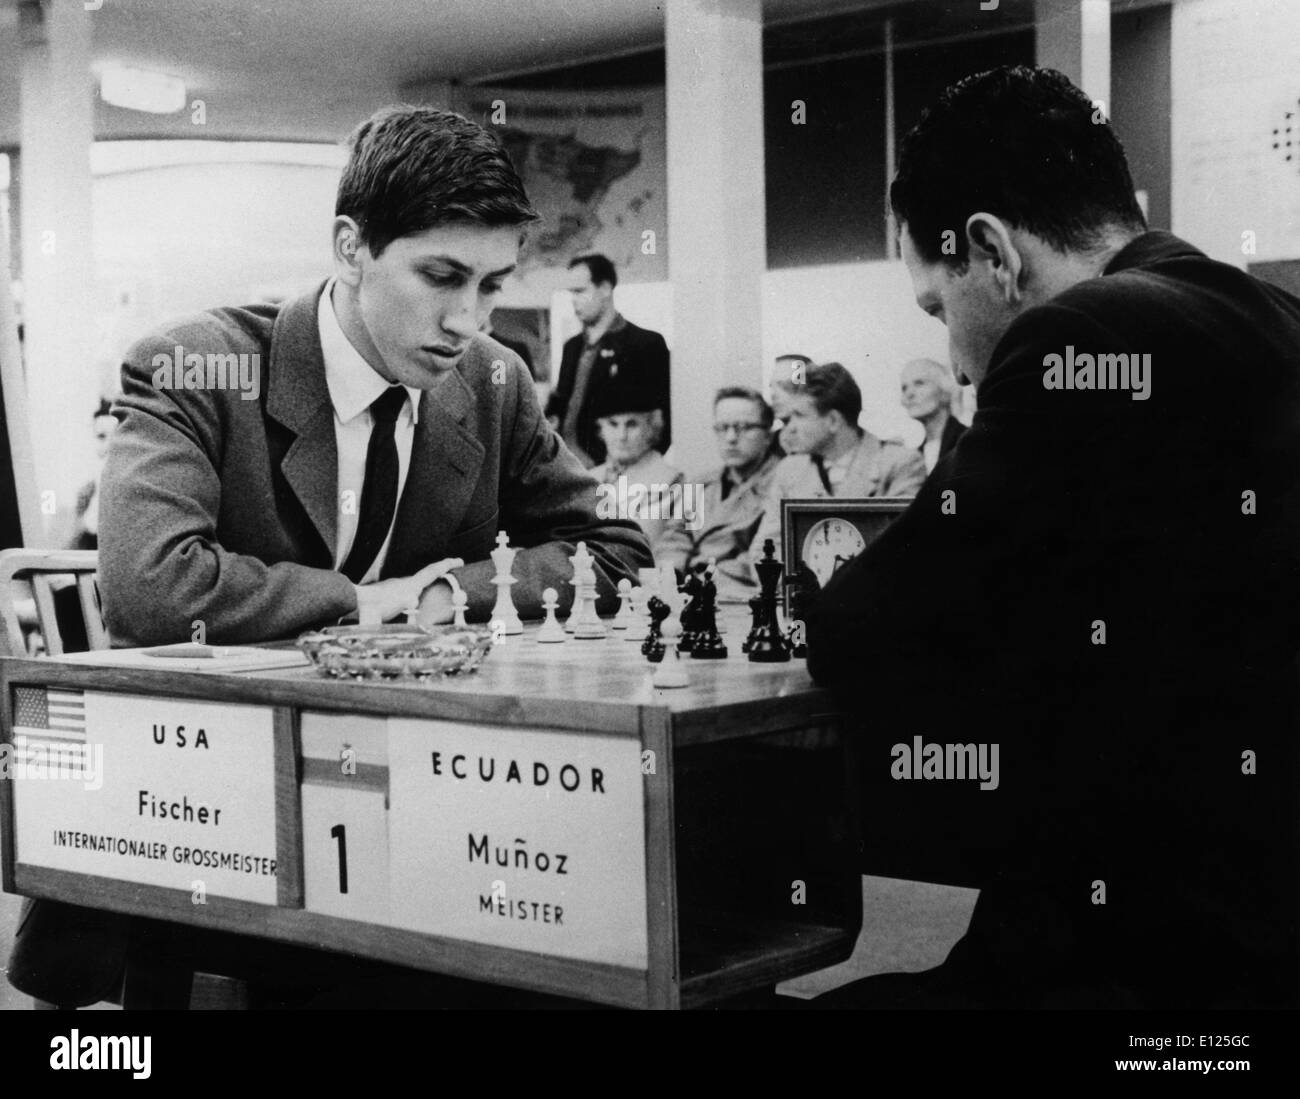 Jul 16, 2004; Leipzig, EAST GERMANY; (File Photo 10/20/1960) Former world chess champion BOBBY FISCHER of the United - Stock Image